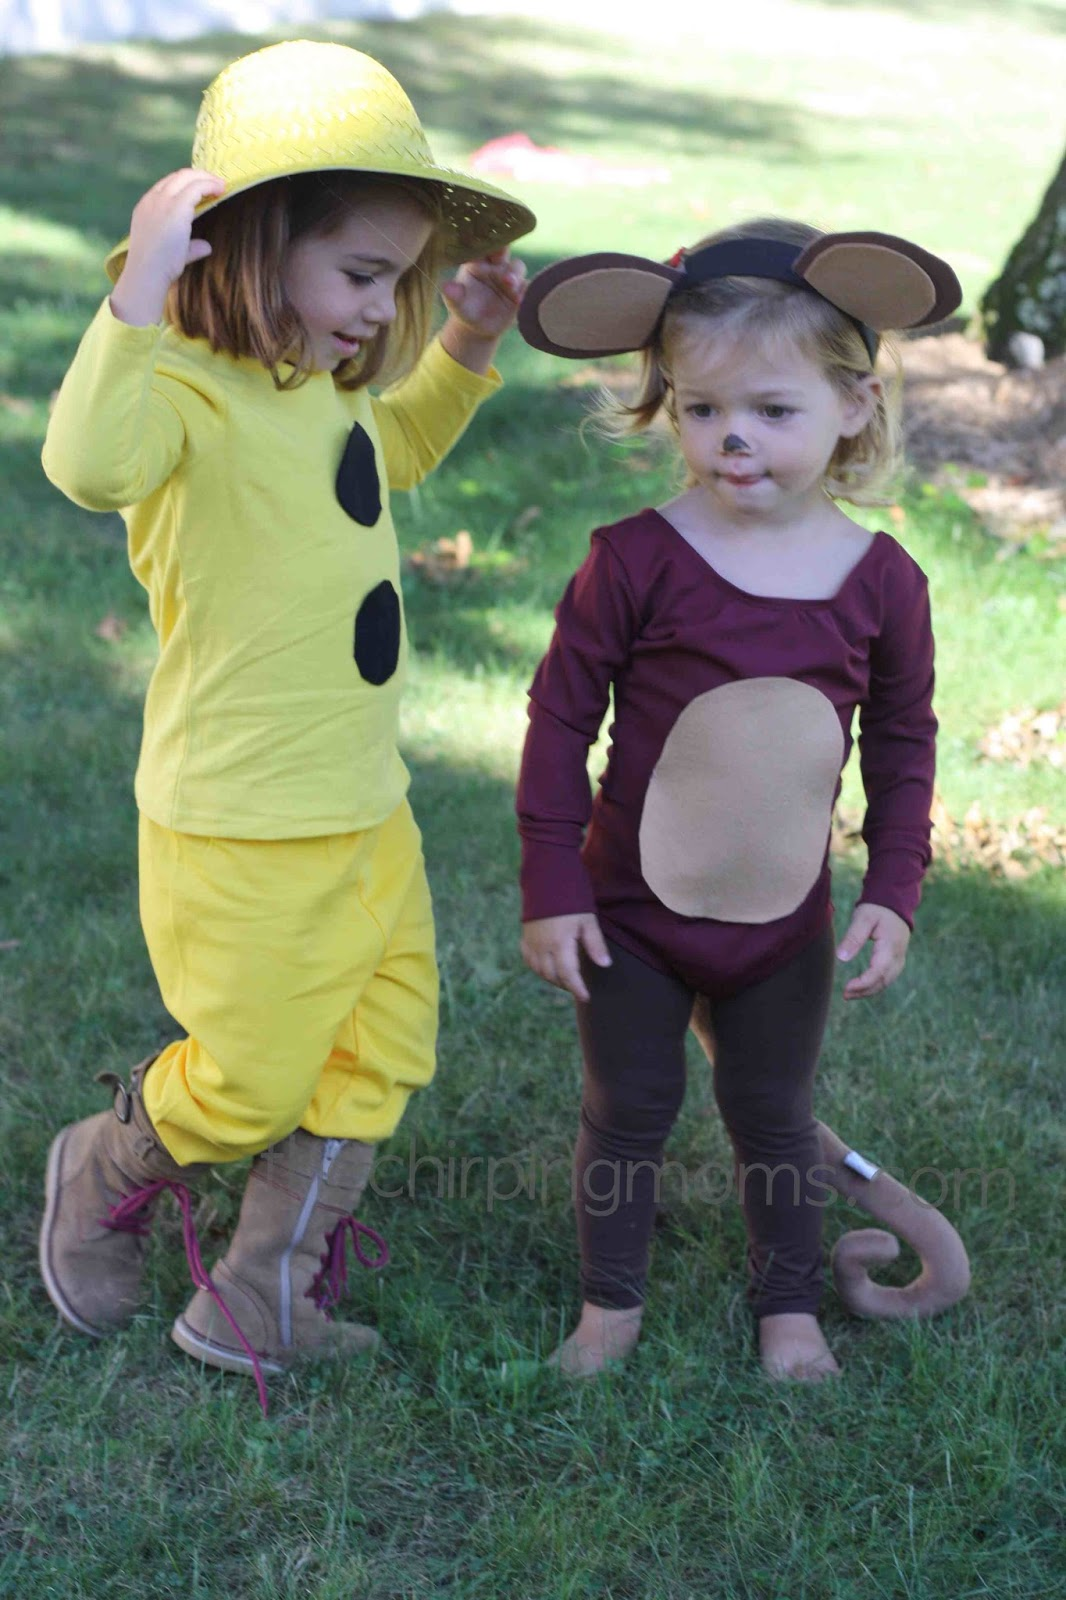 diy halloween costumes: curious george & the man with the yellow hat